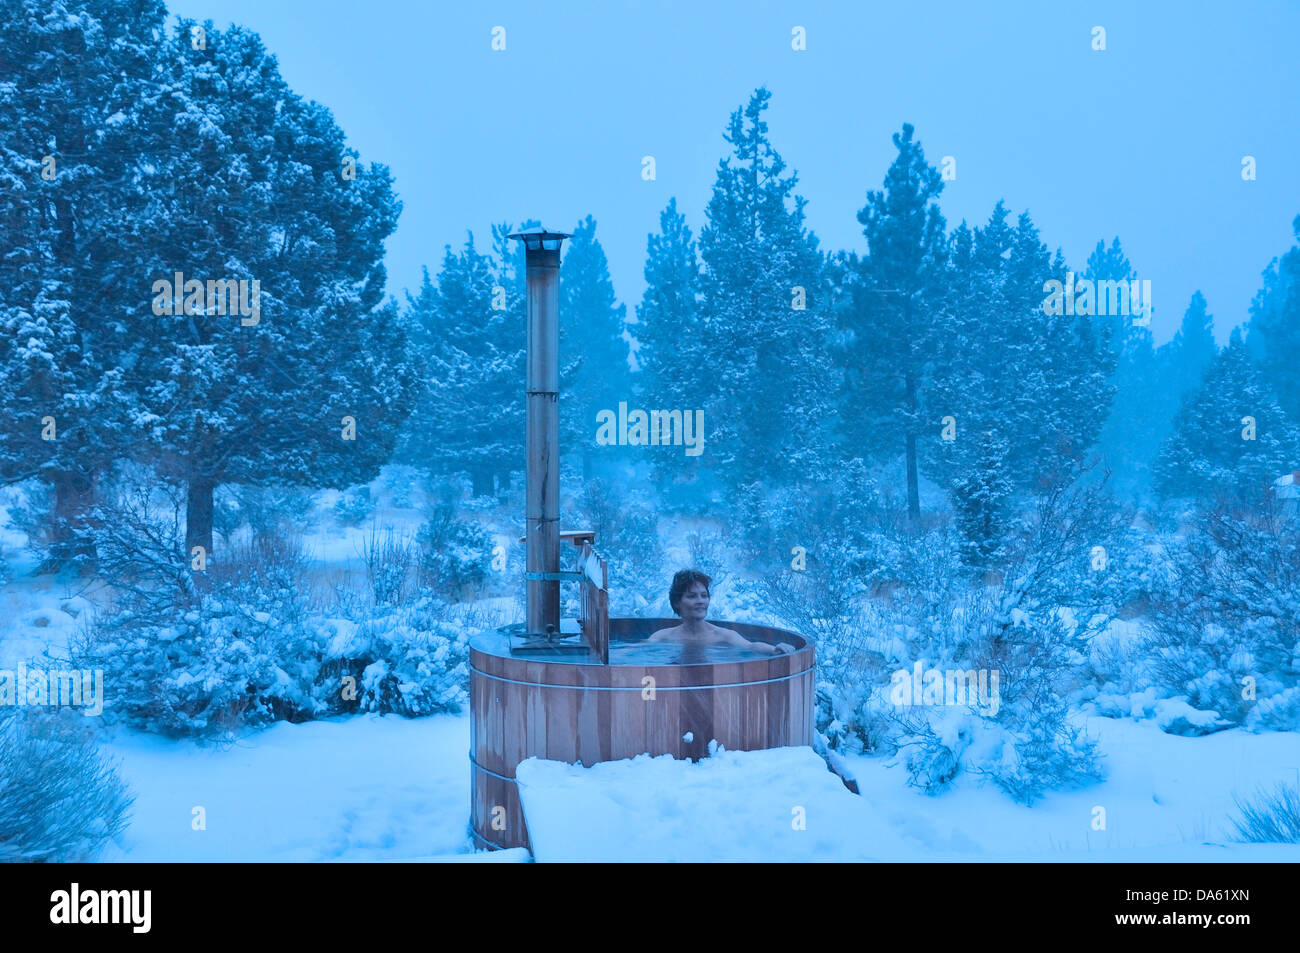 woman wood fired hot tub snow winter snowing central oregon stock photo royalty free. Black Bedroom Furniture Sets. Home Design Ideas